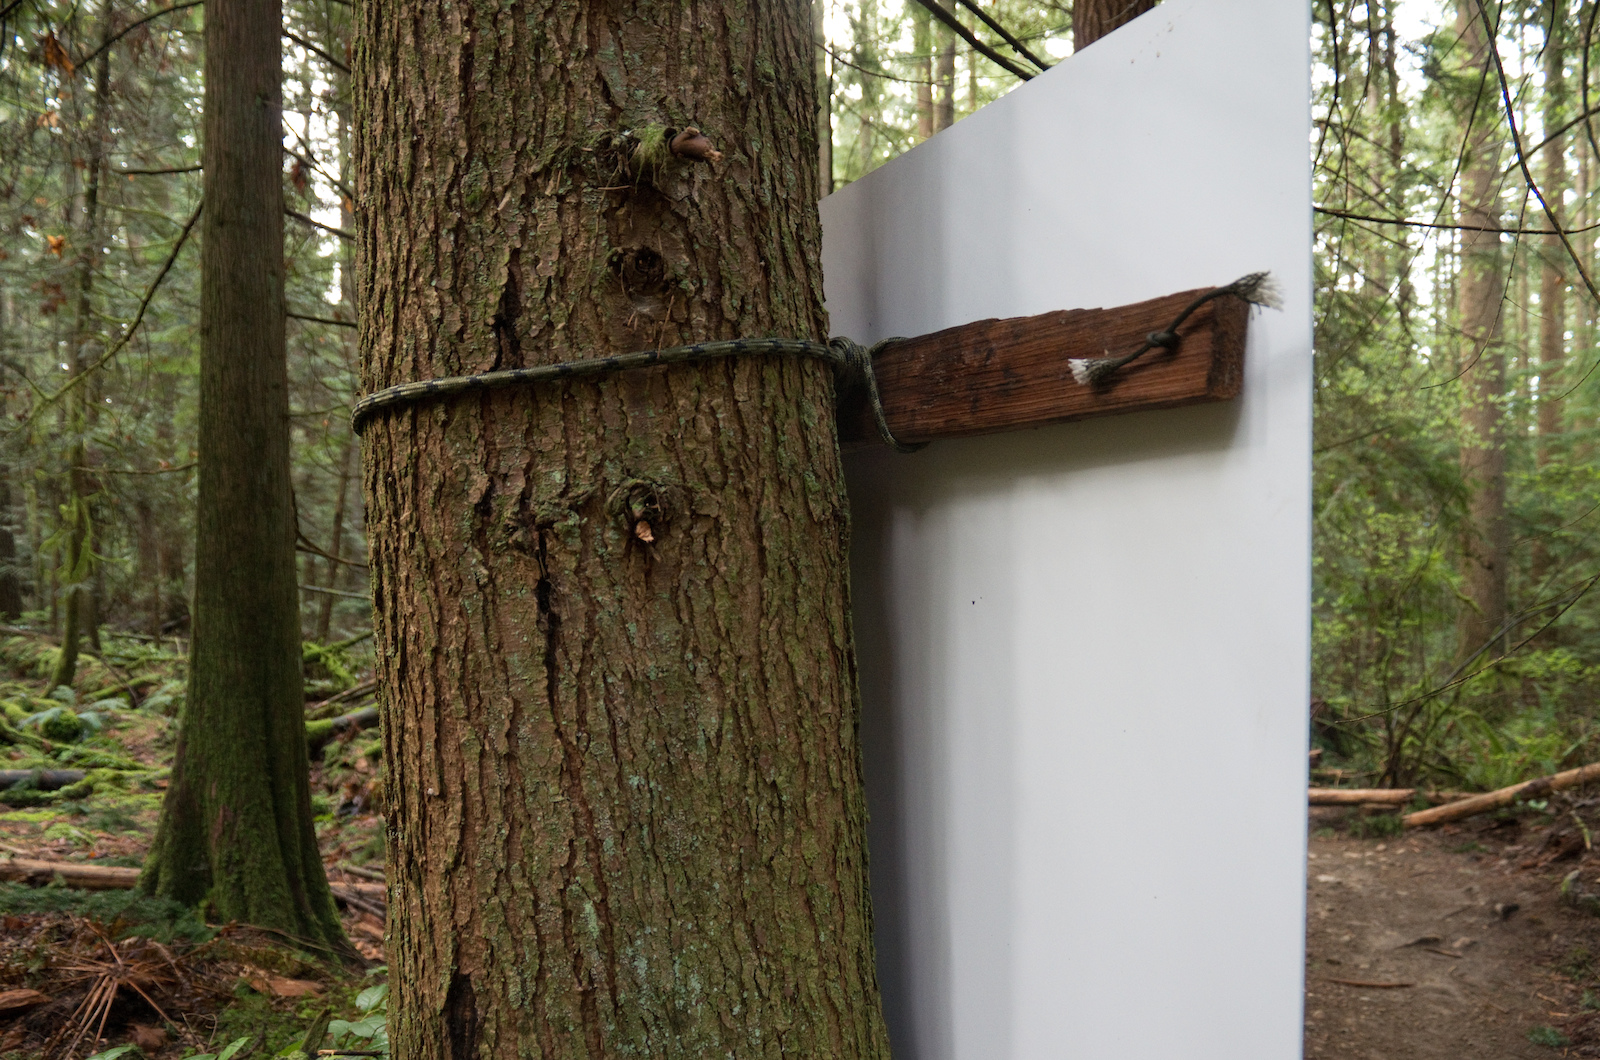 For the installation we didn t want to nail anything to live trees so Martin and Penny devised a solution where a slat was tied to the tree and the print was tied to the slat.